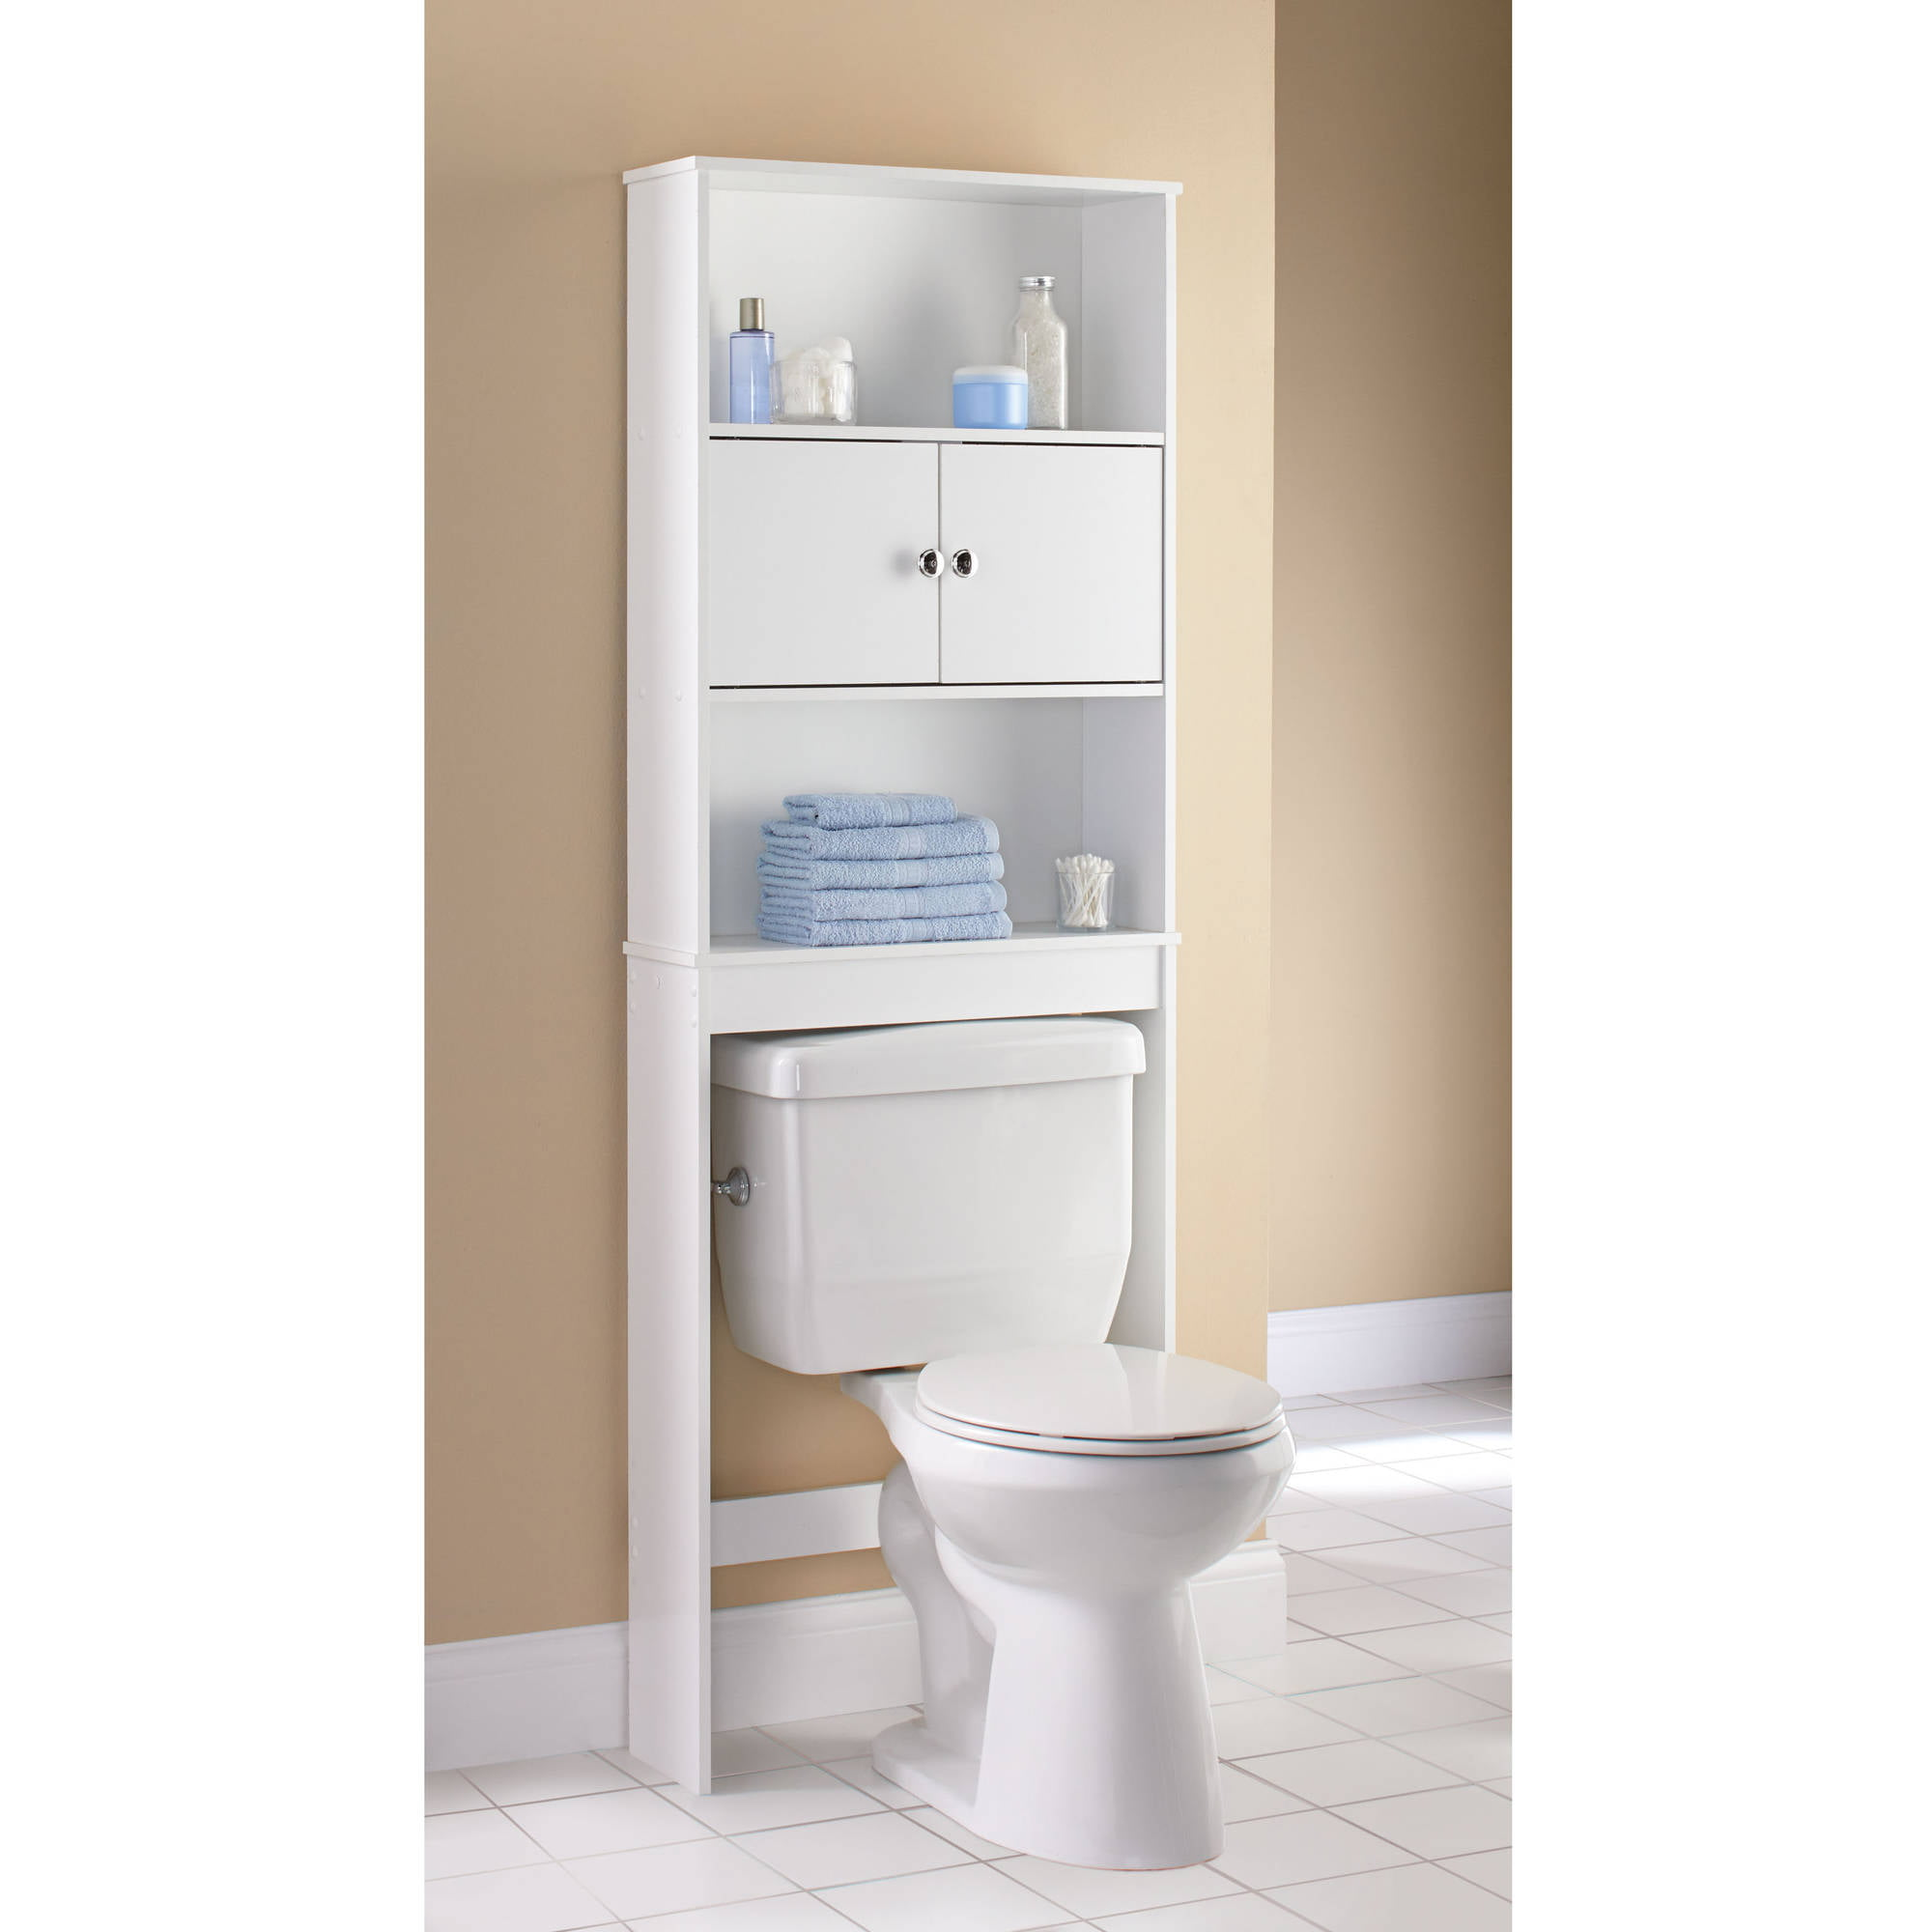 Bathroom cabinet space saver - Bathroom Cabinet Space Saver 4